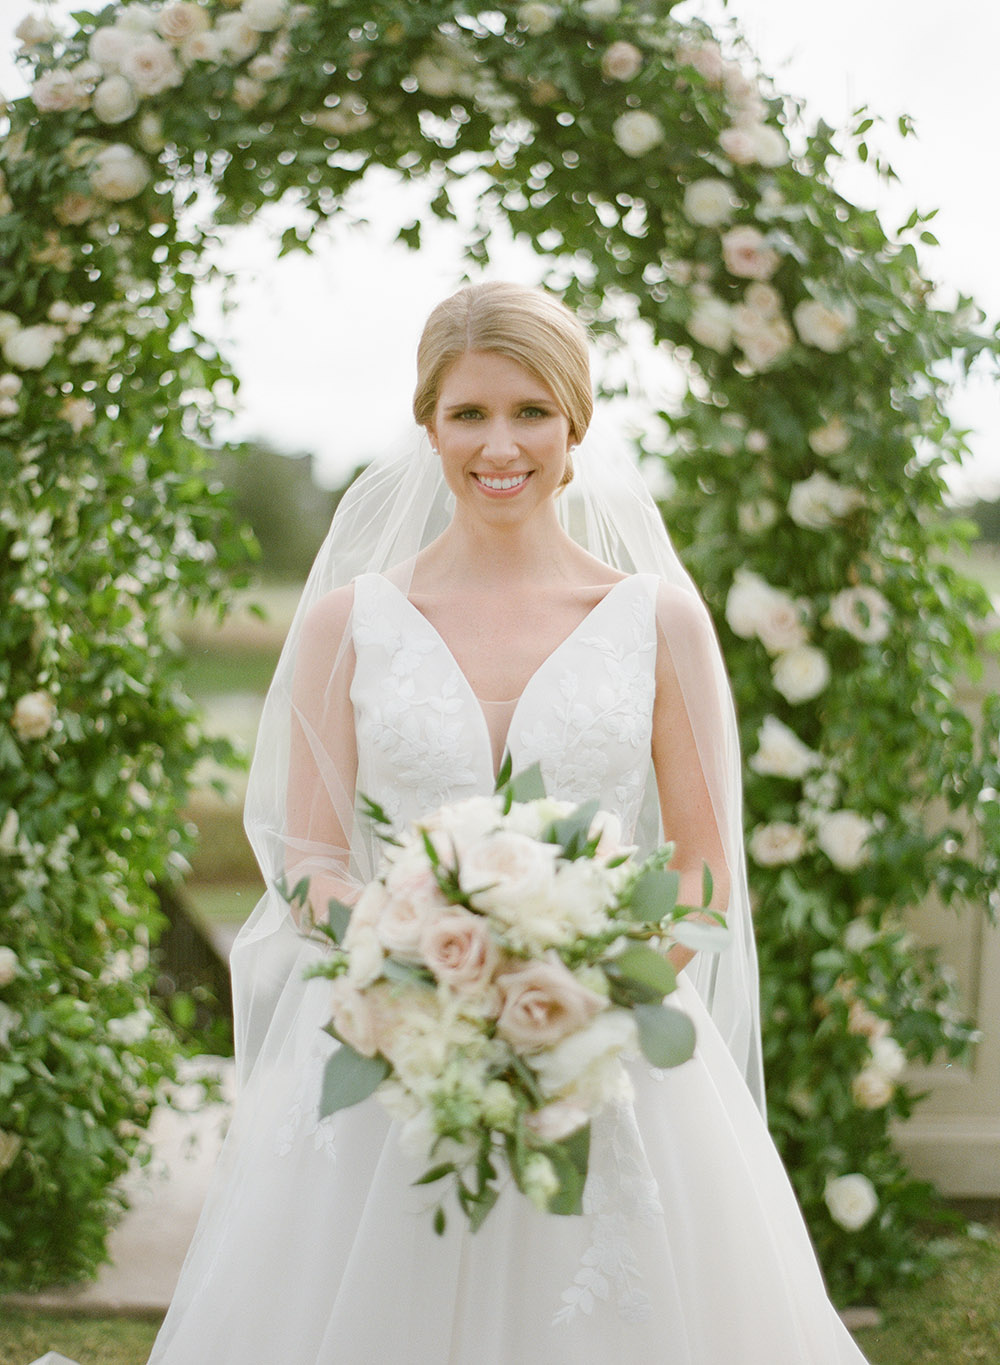 Bride, wearing white sleeveless gown with lace embroidery and long veil, standing in front of greenery arch covered with blooming blush pink roses.